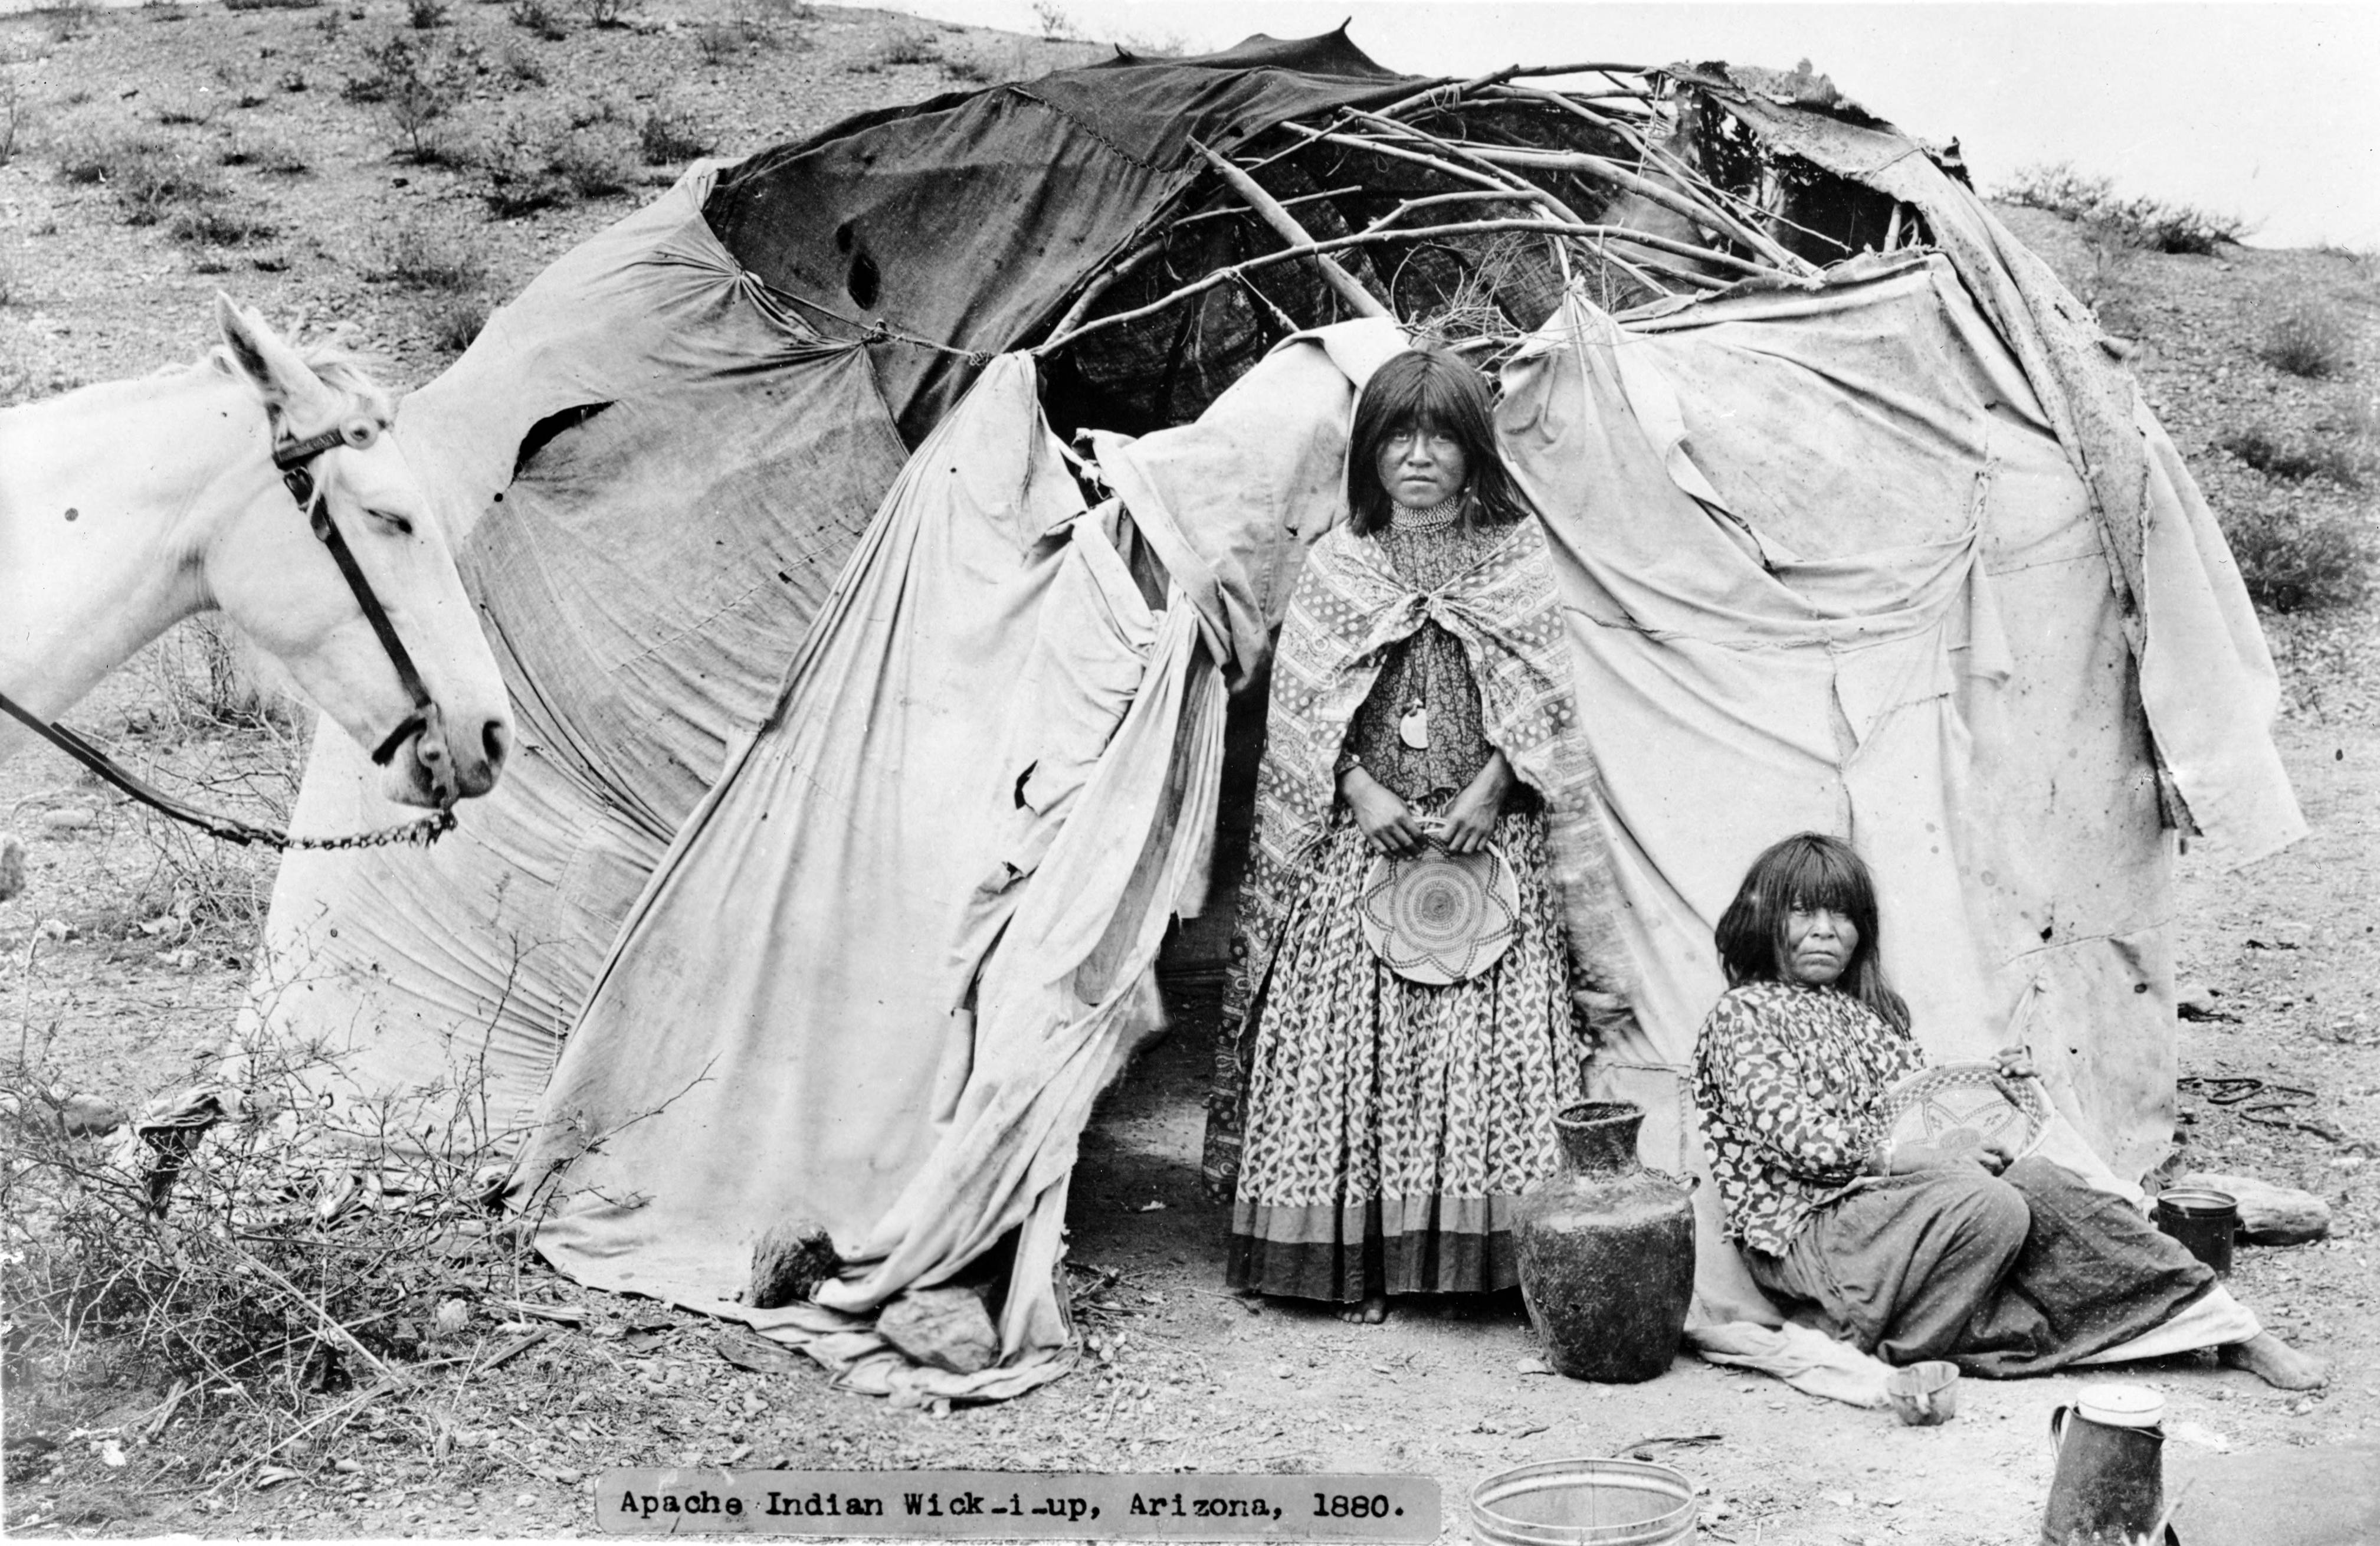 File:Apache wickiup.jpg